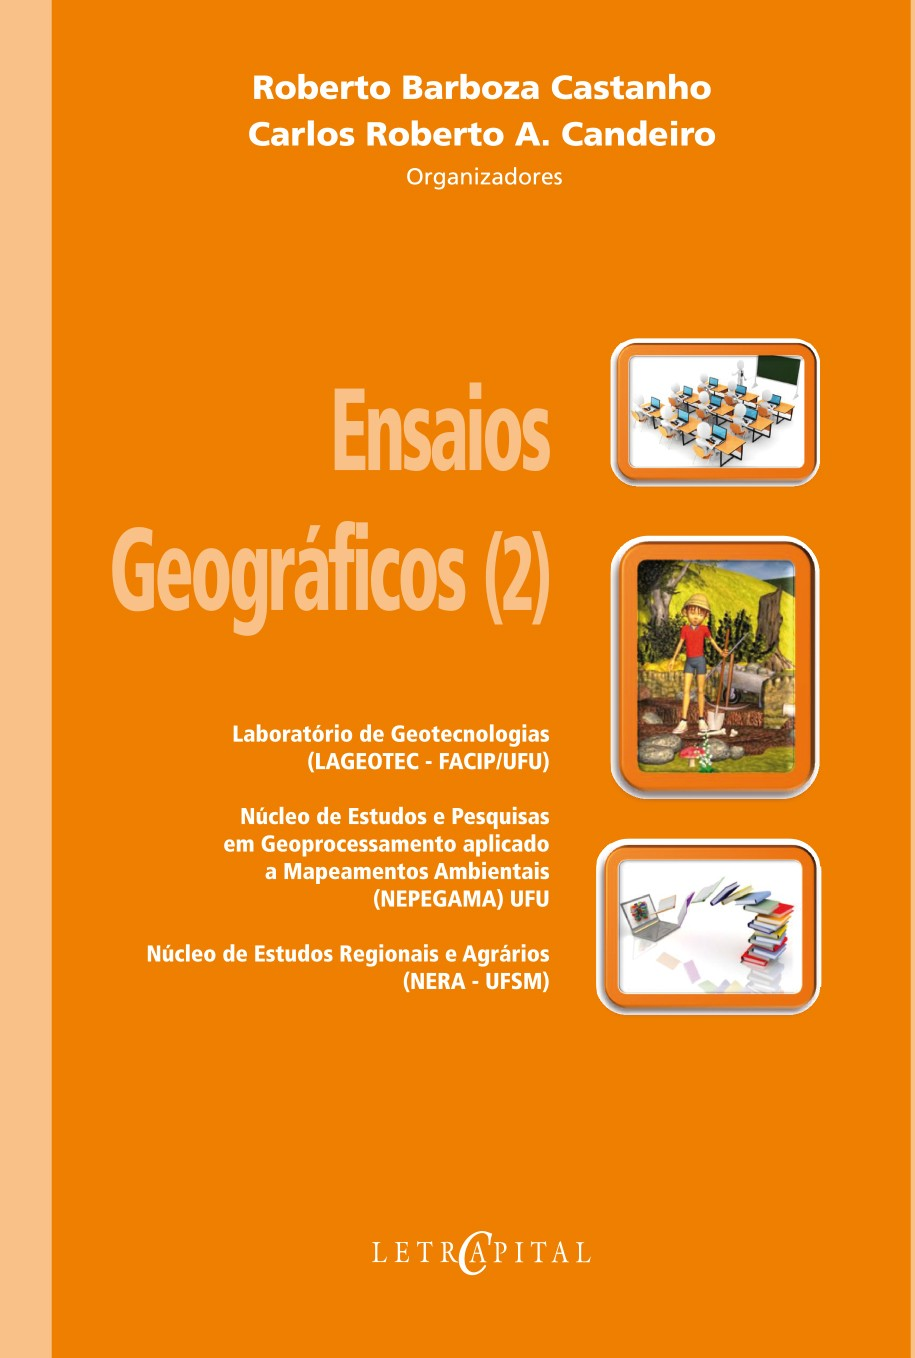 Ensaios Geográficos (2)